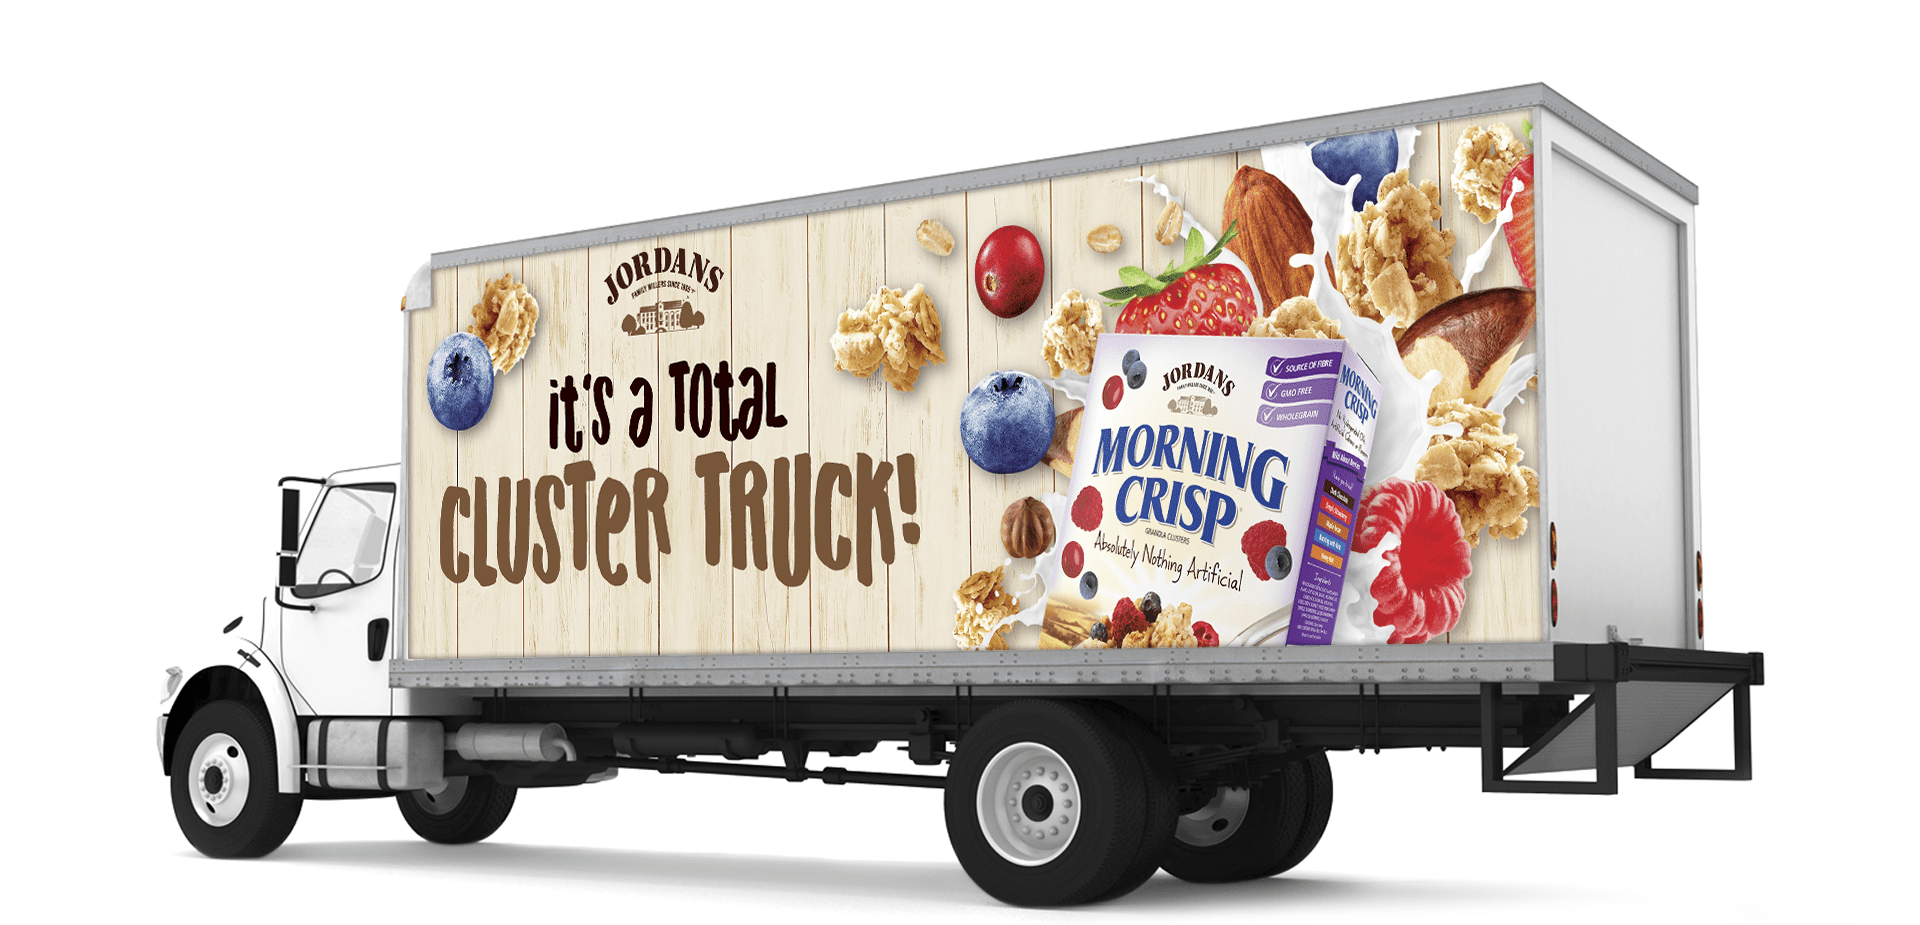 Jordans Morning Crisp transport truck decal